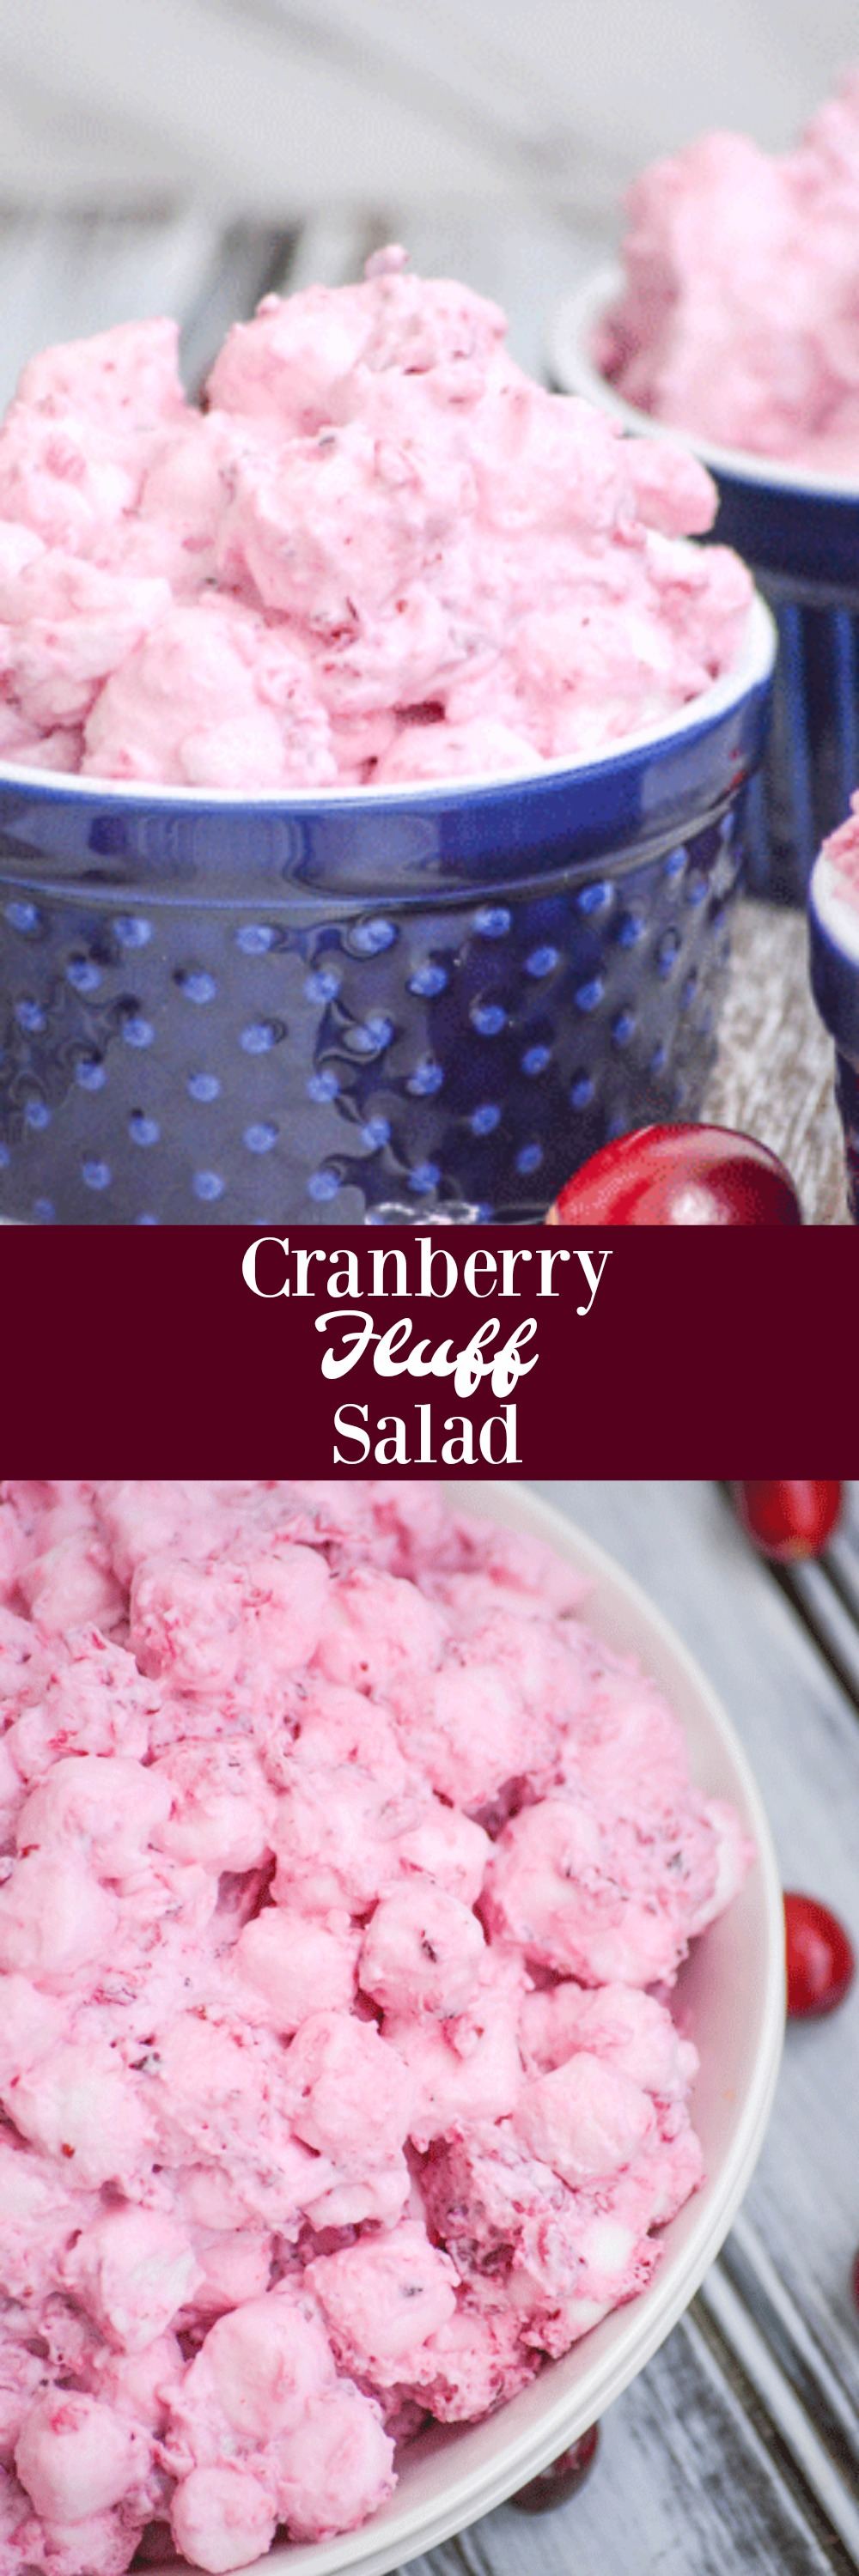 A seasonal favorite, this quick & easy Cranberry Fluff Salad features fresh cranberries, crushed pineapple, and mini marshmallows tossed in freshly whipped cream. It's the perfect dessert, whether you're just craving a bit of seasonal flavor or need to whip something up at the last second.